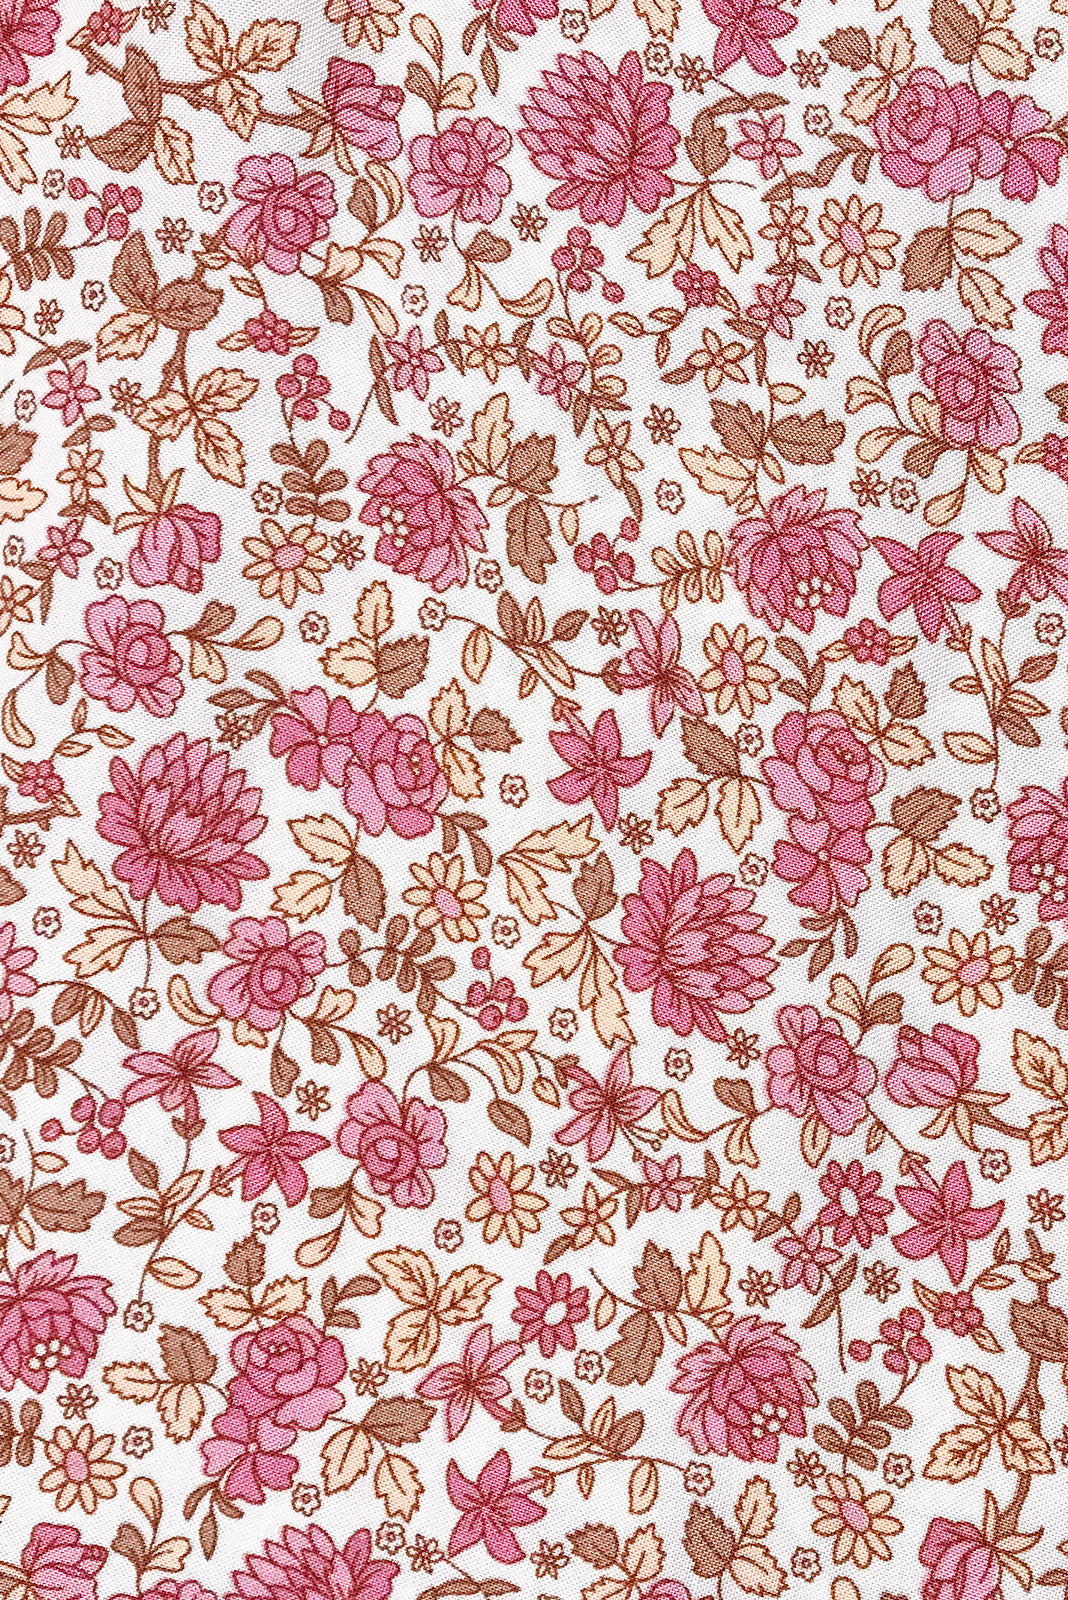 Fabric Swatch of Jude Damask Pink Dress is soft viscose fabric in  retro bohemian pink print.